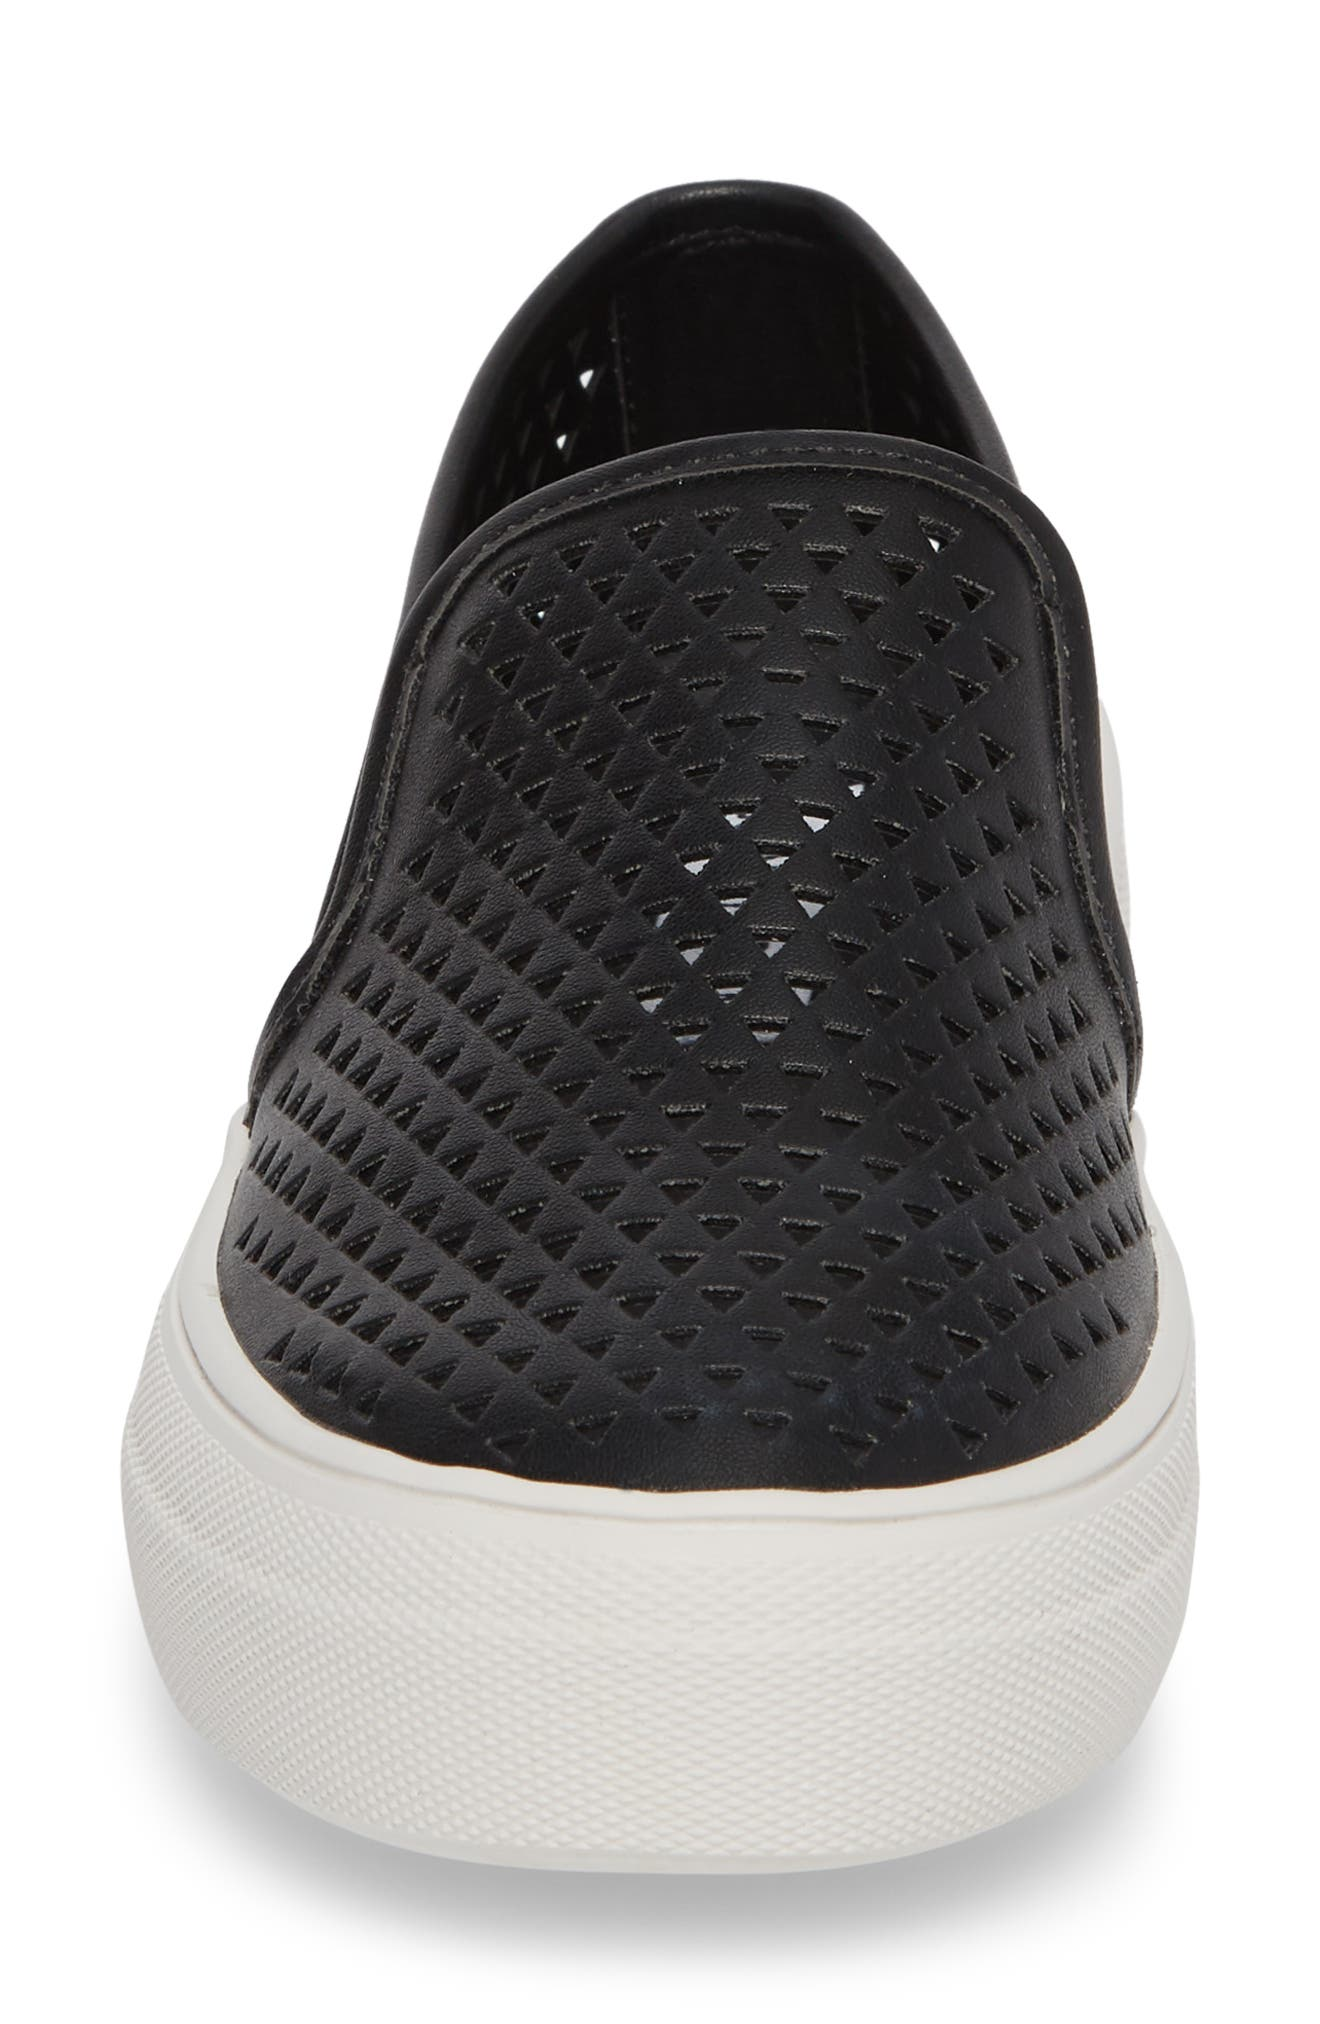 Gal-P Perforated Slip-On Sneaker,                             Alternate thumbnail 4, color,                             Black